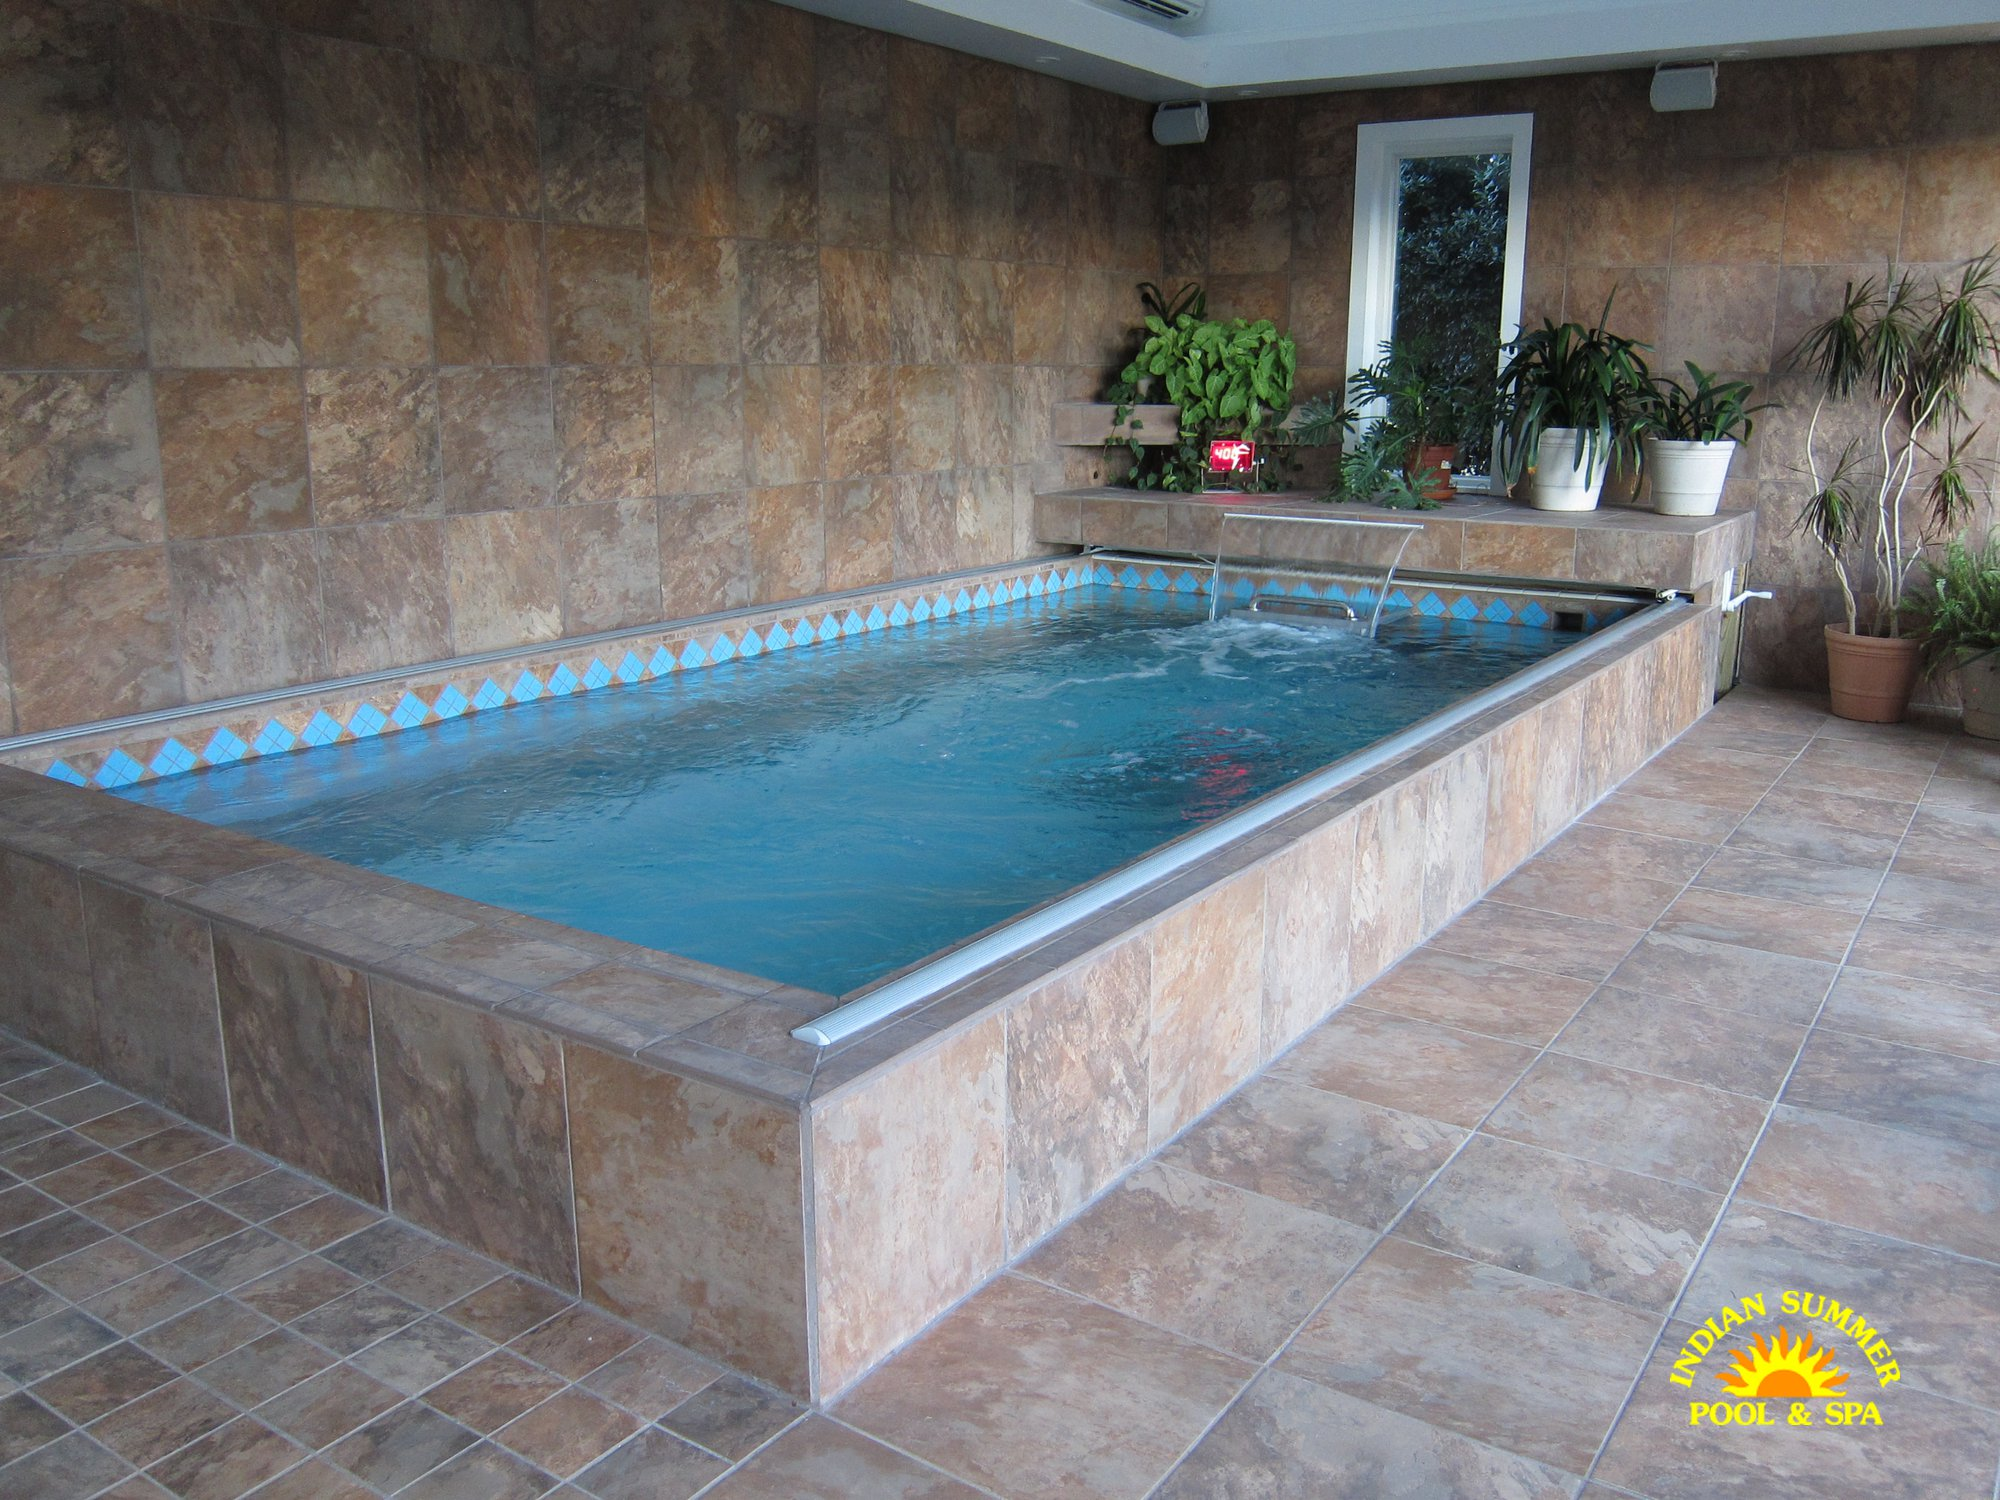 Jacuzzi Pool Gspa Swim Spas In Springfield Mo Indian Summer Pool And Spa